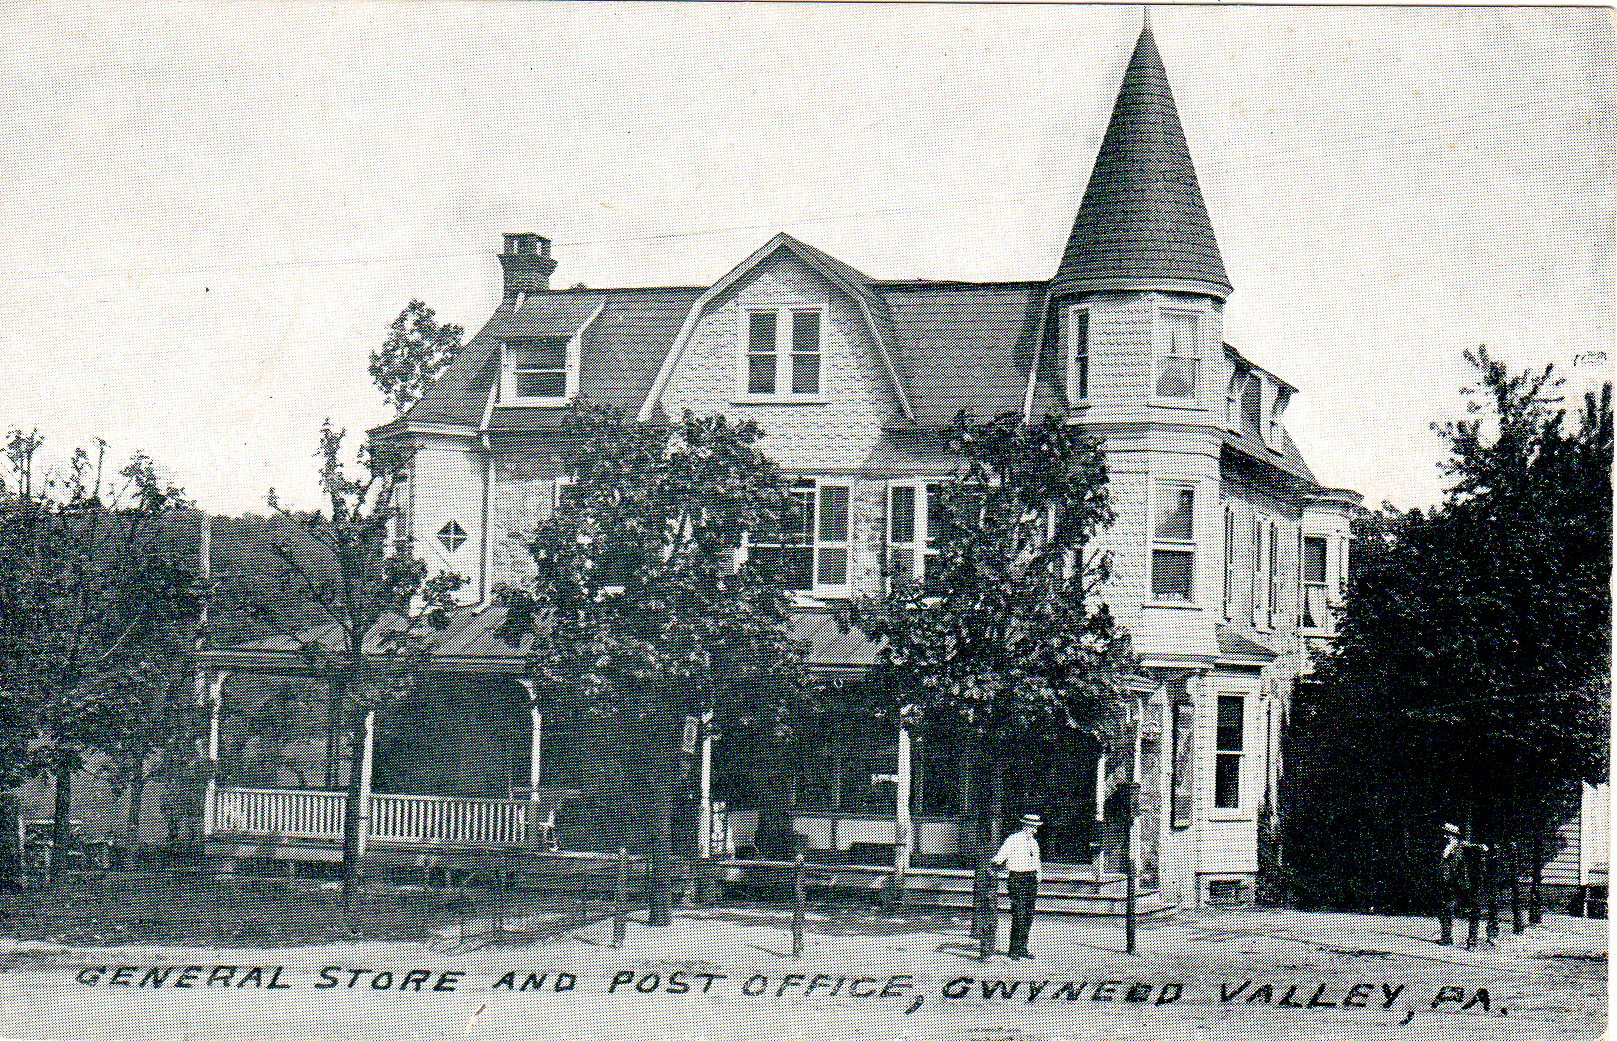 Post Card Collection (E Simon)_2682_85_General Store and Post Office, Gwynedd Valley, Pa